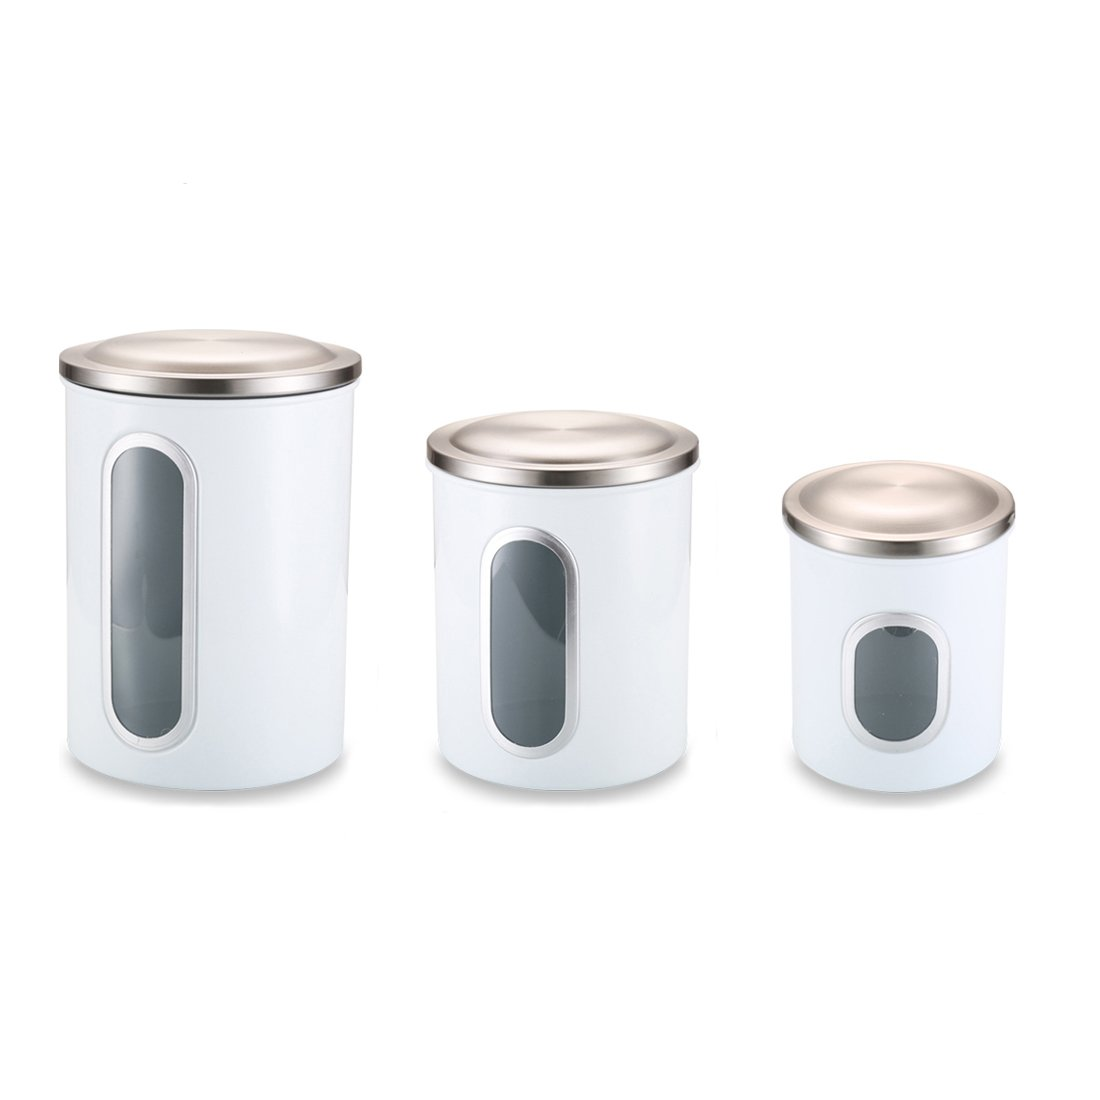 FC Airtight Window Kitchen Canister, Stainless Steel Canisters Sets with Fingerprint Resistance Lid, Set of 3 (Black) FORTUNE CANDY